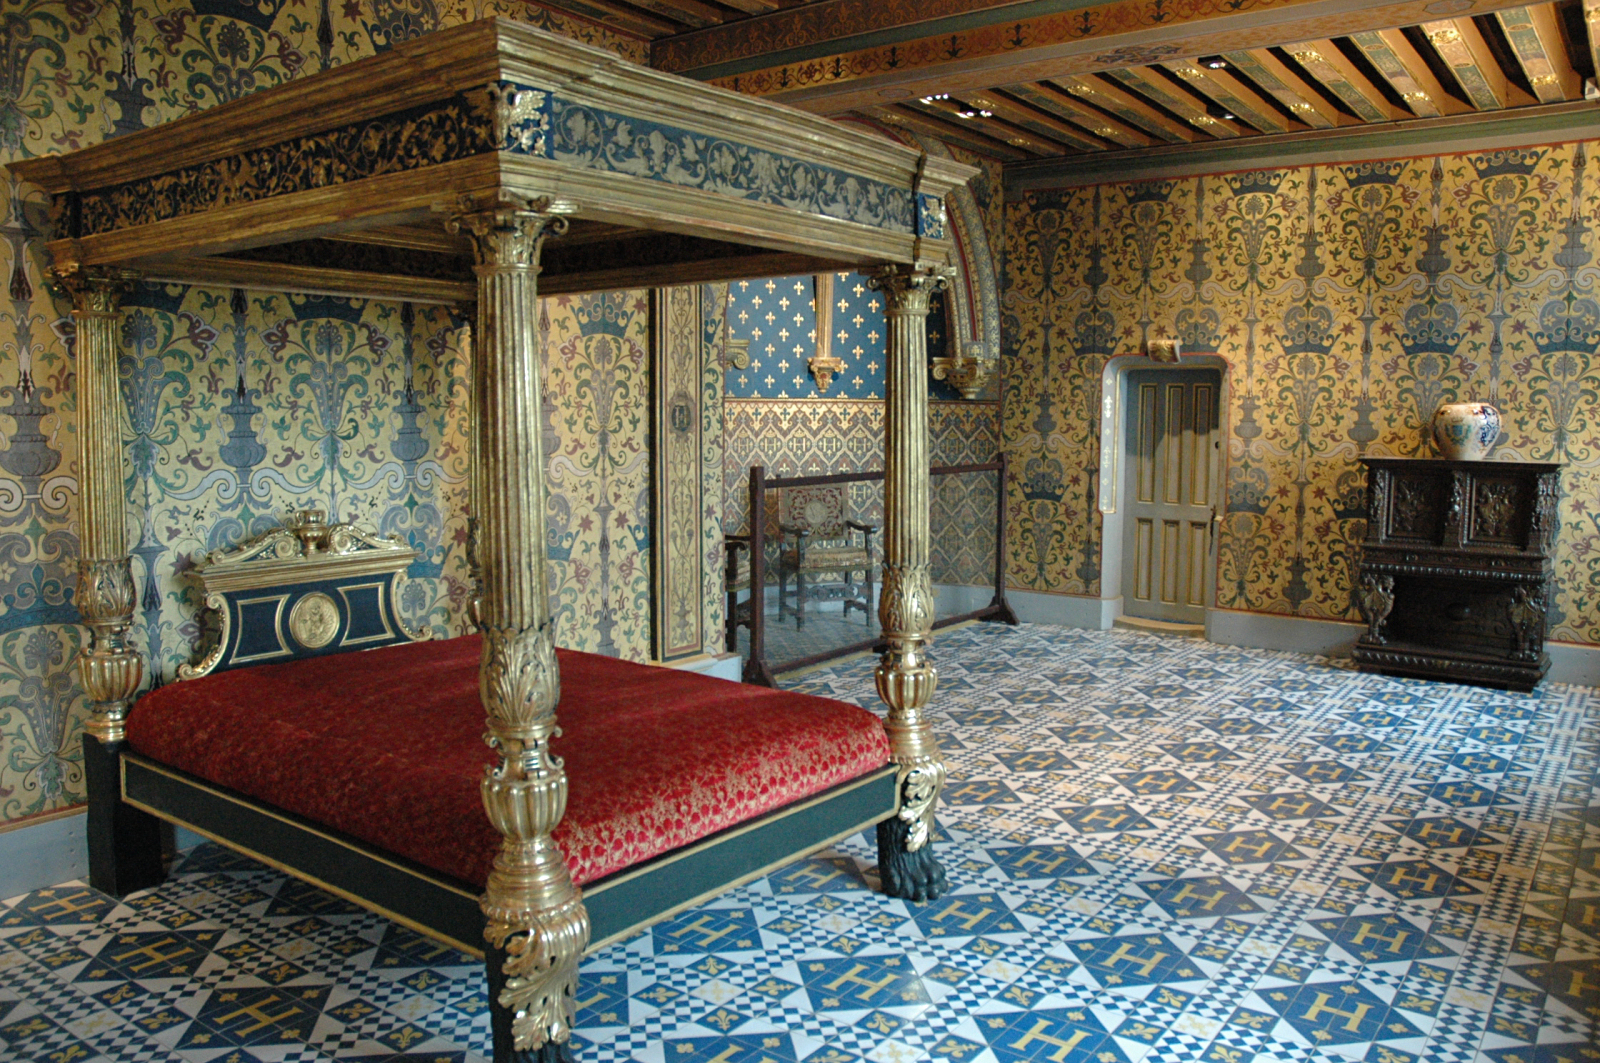 The Chambre du Roi with Henry IV's H in the floor tiles